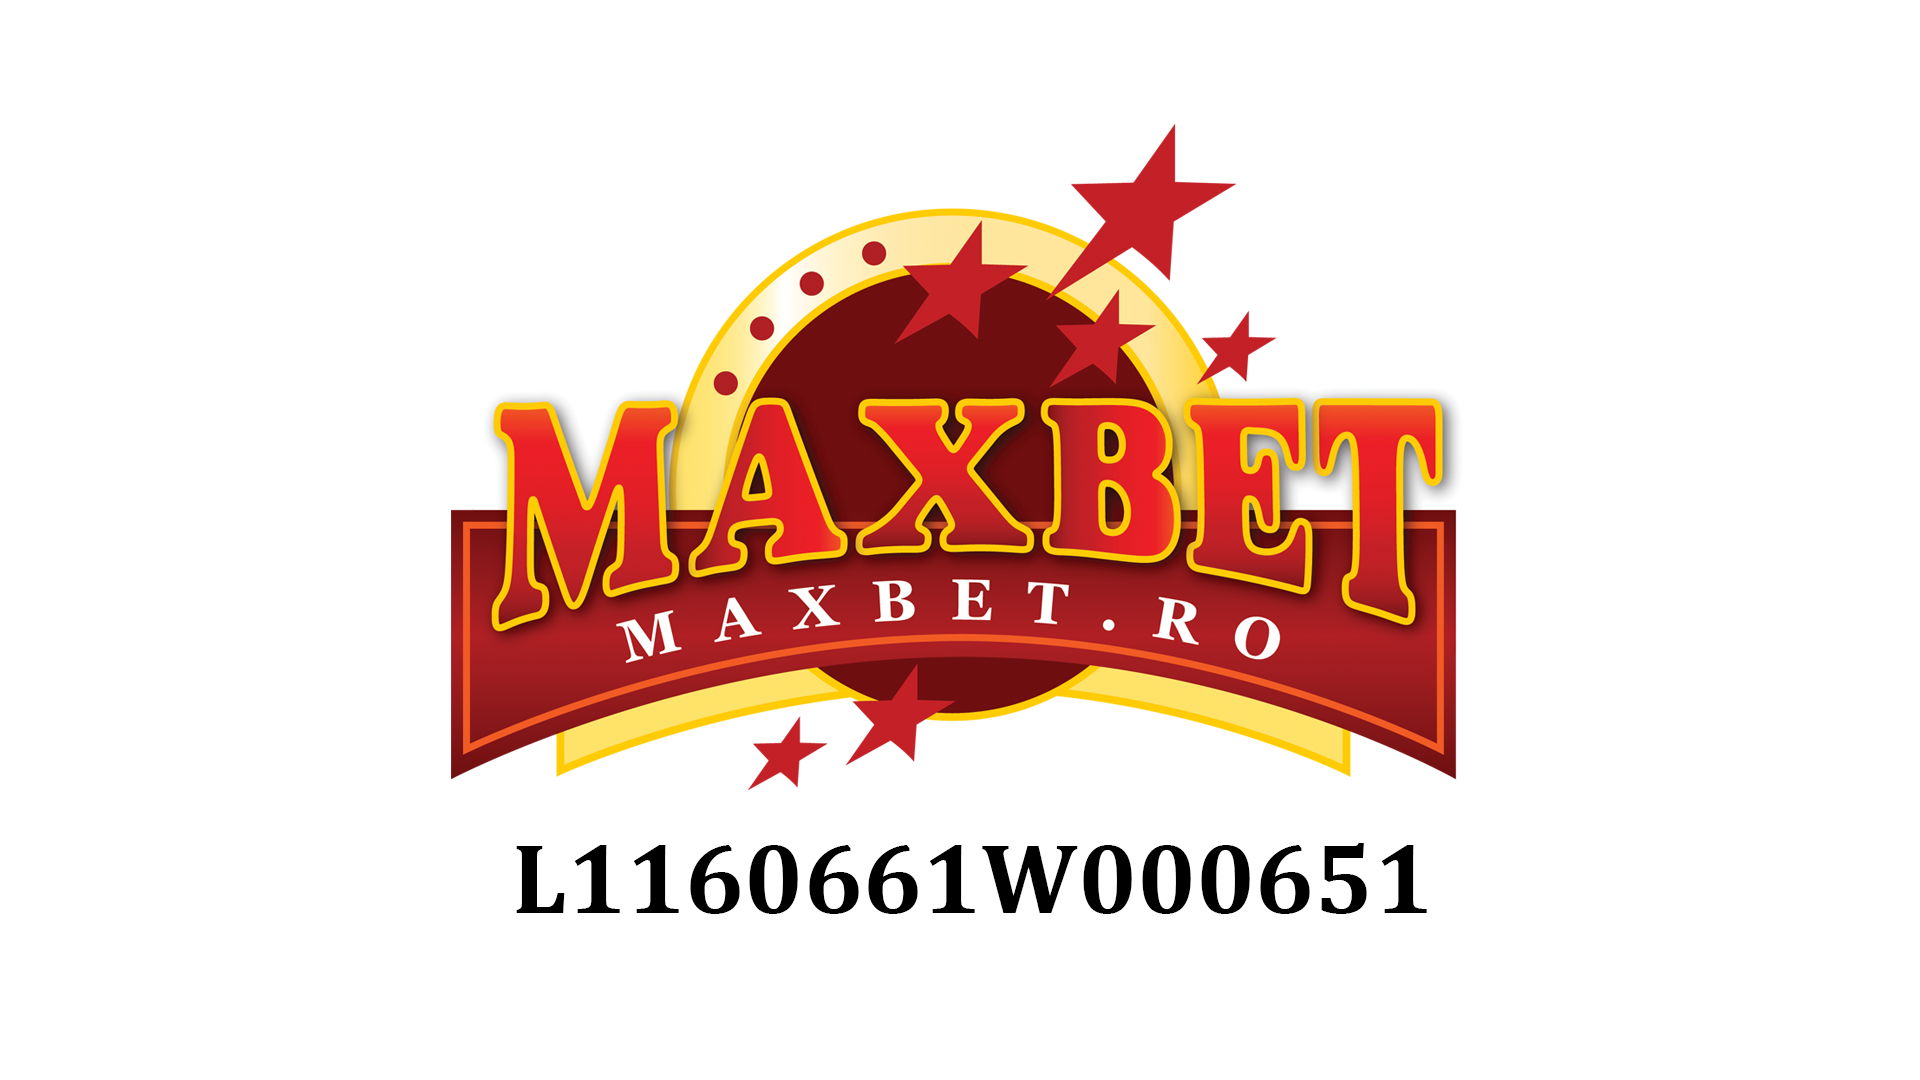 Top case de pariuri online licentiate in Romania - Maxbet